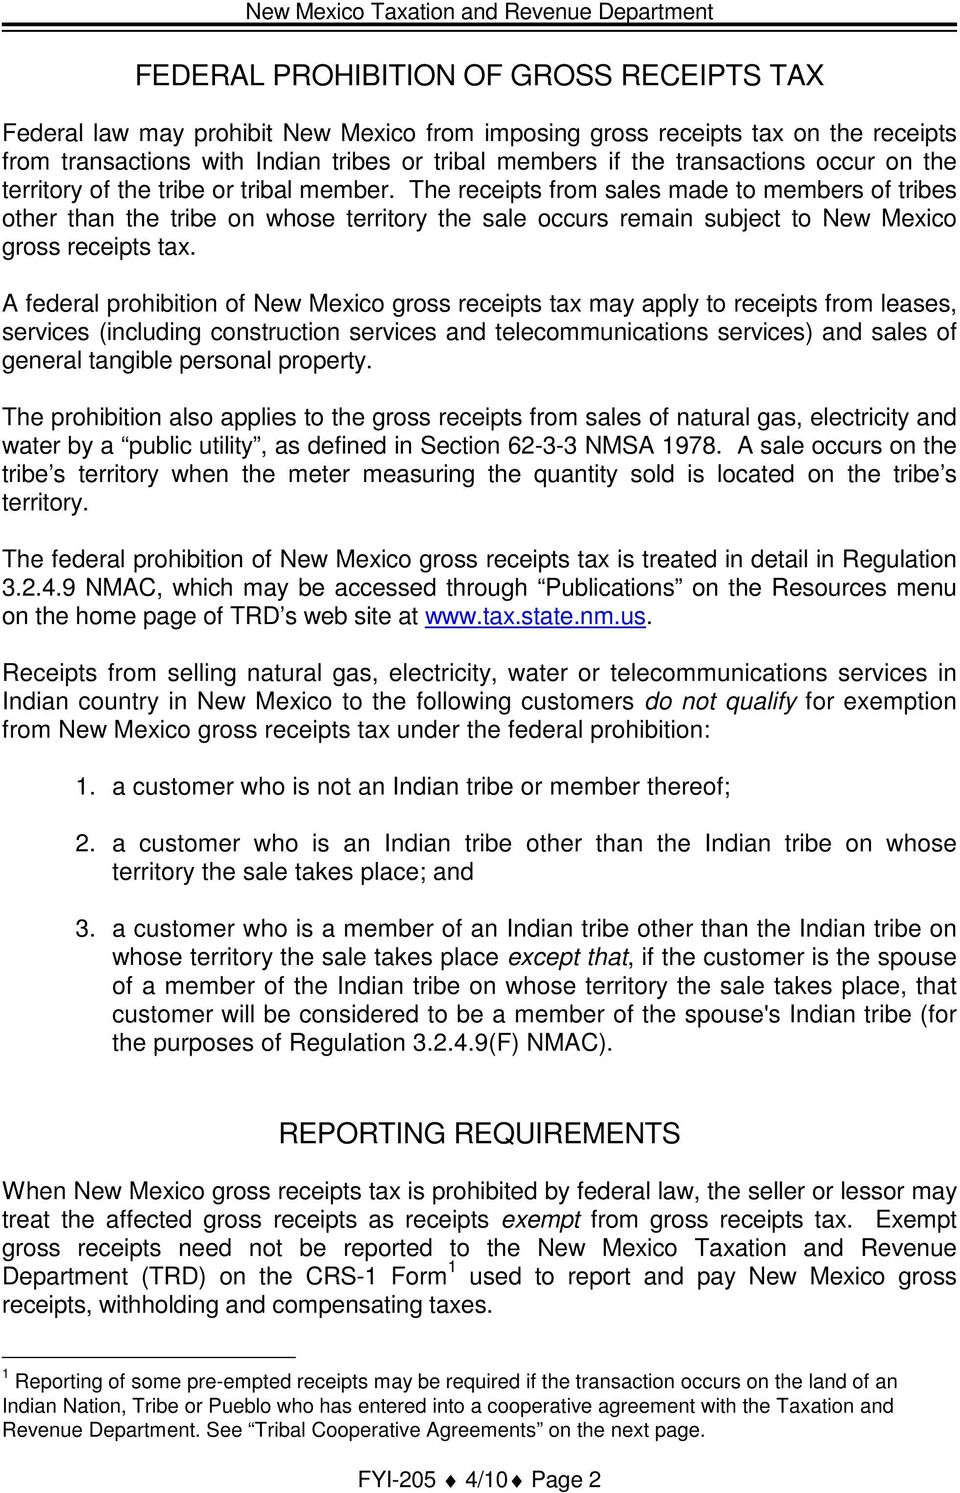 The receipts from sales made to members of tribes other than the tribe on whose territory the sale occurs remain subject to New Mexico gross receipts tax.